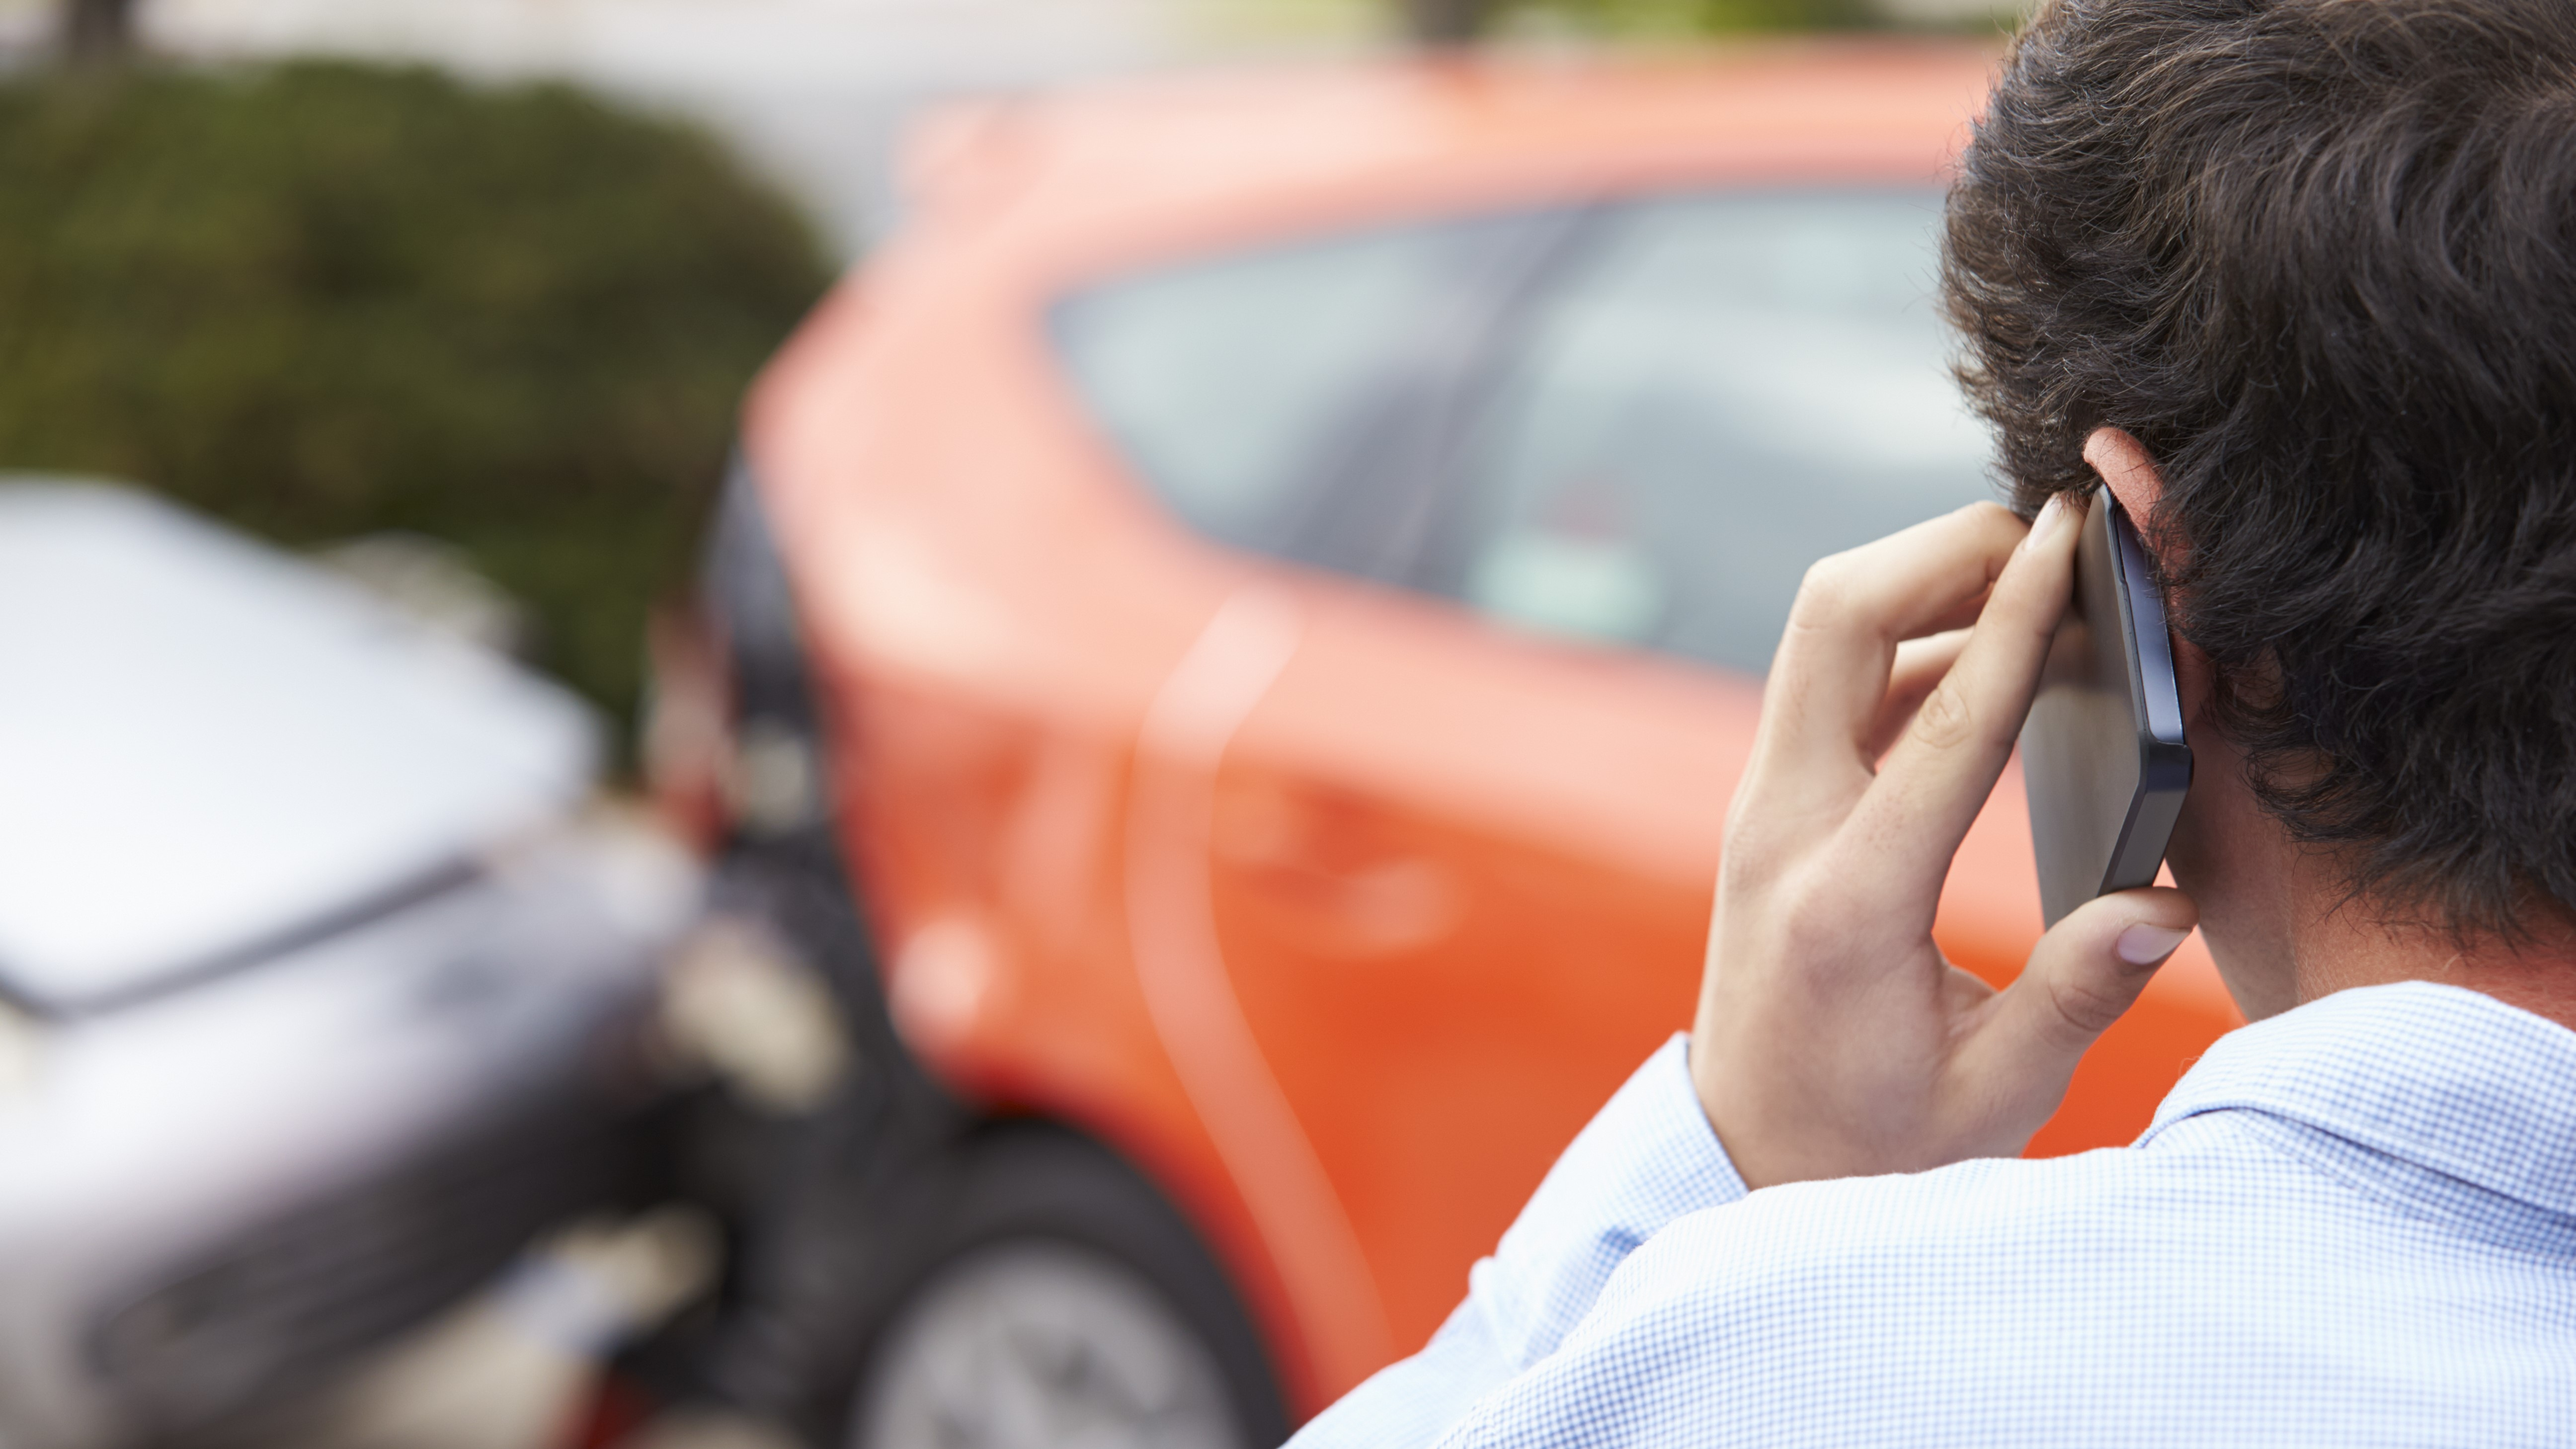 A man on the phone after a car accident.